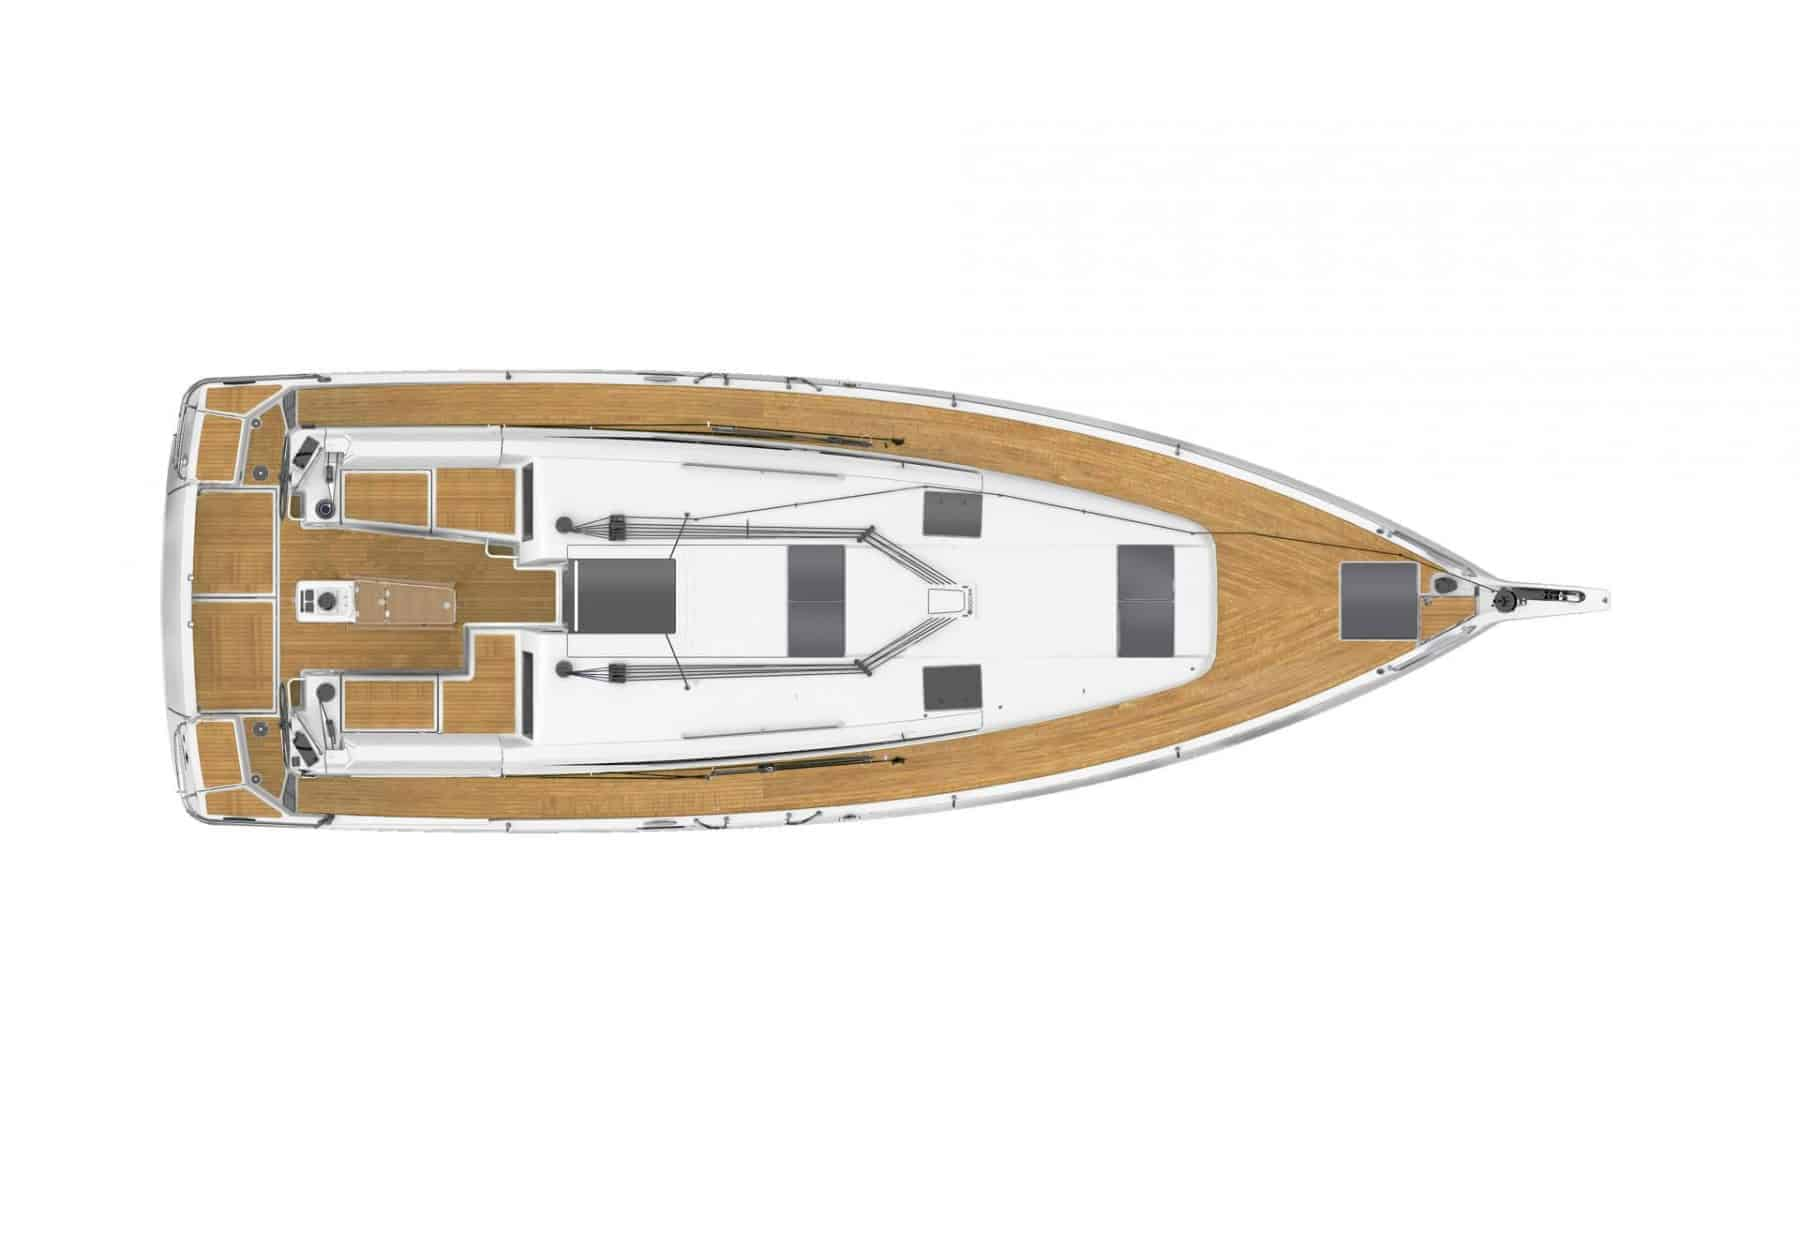 Overview of the exterior of the Jeanneau Sun Odyssey 440